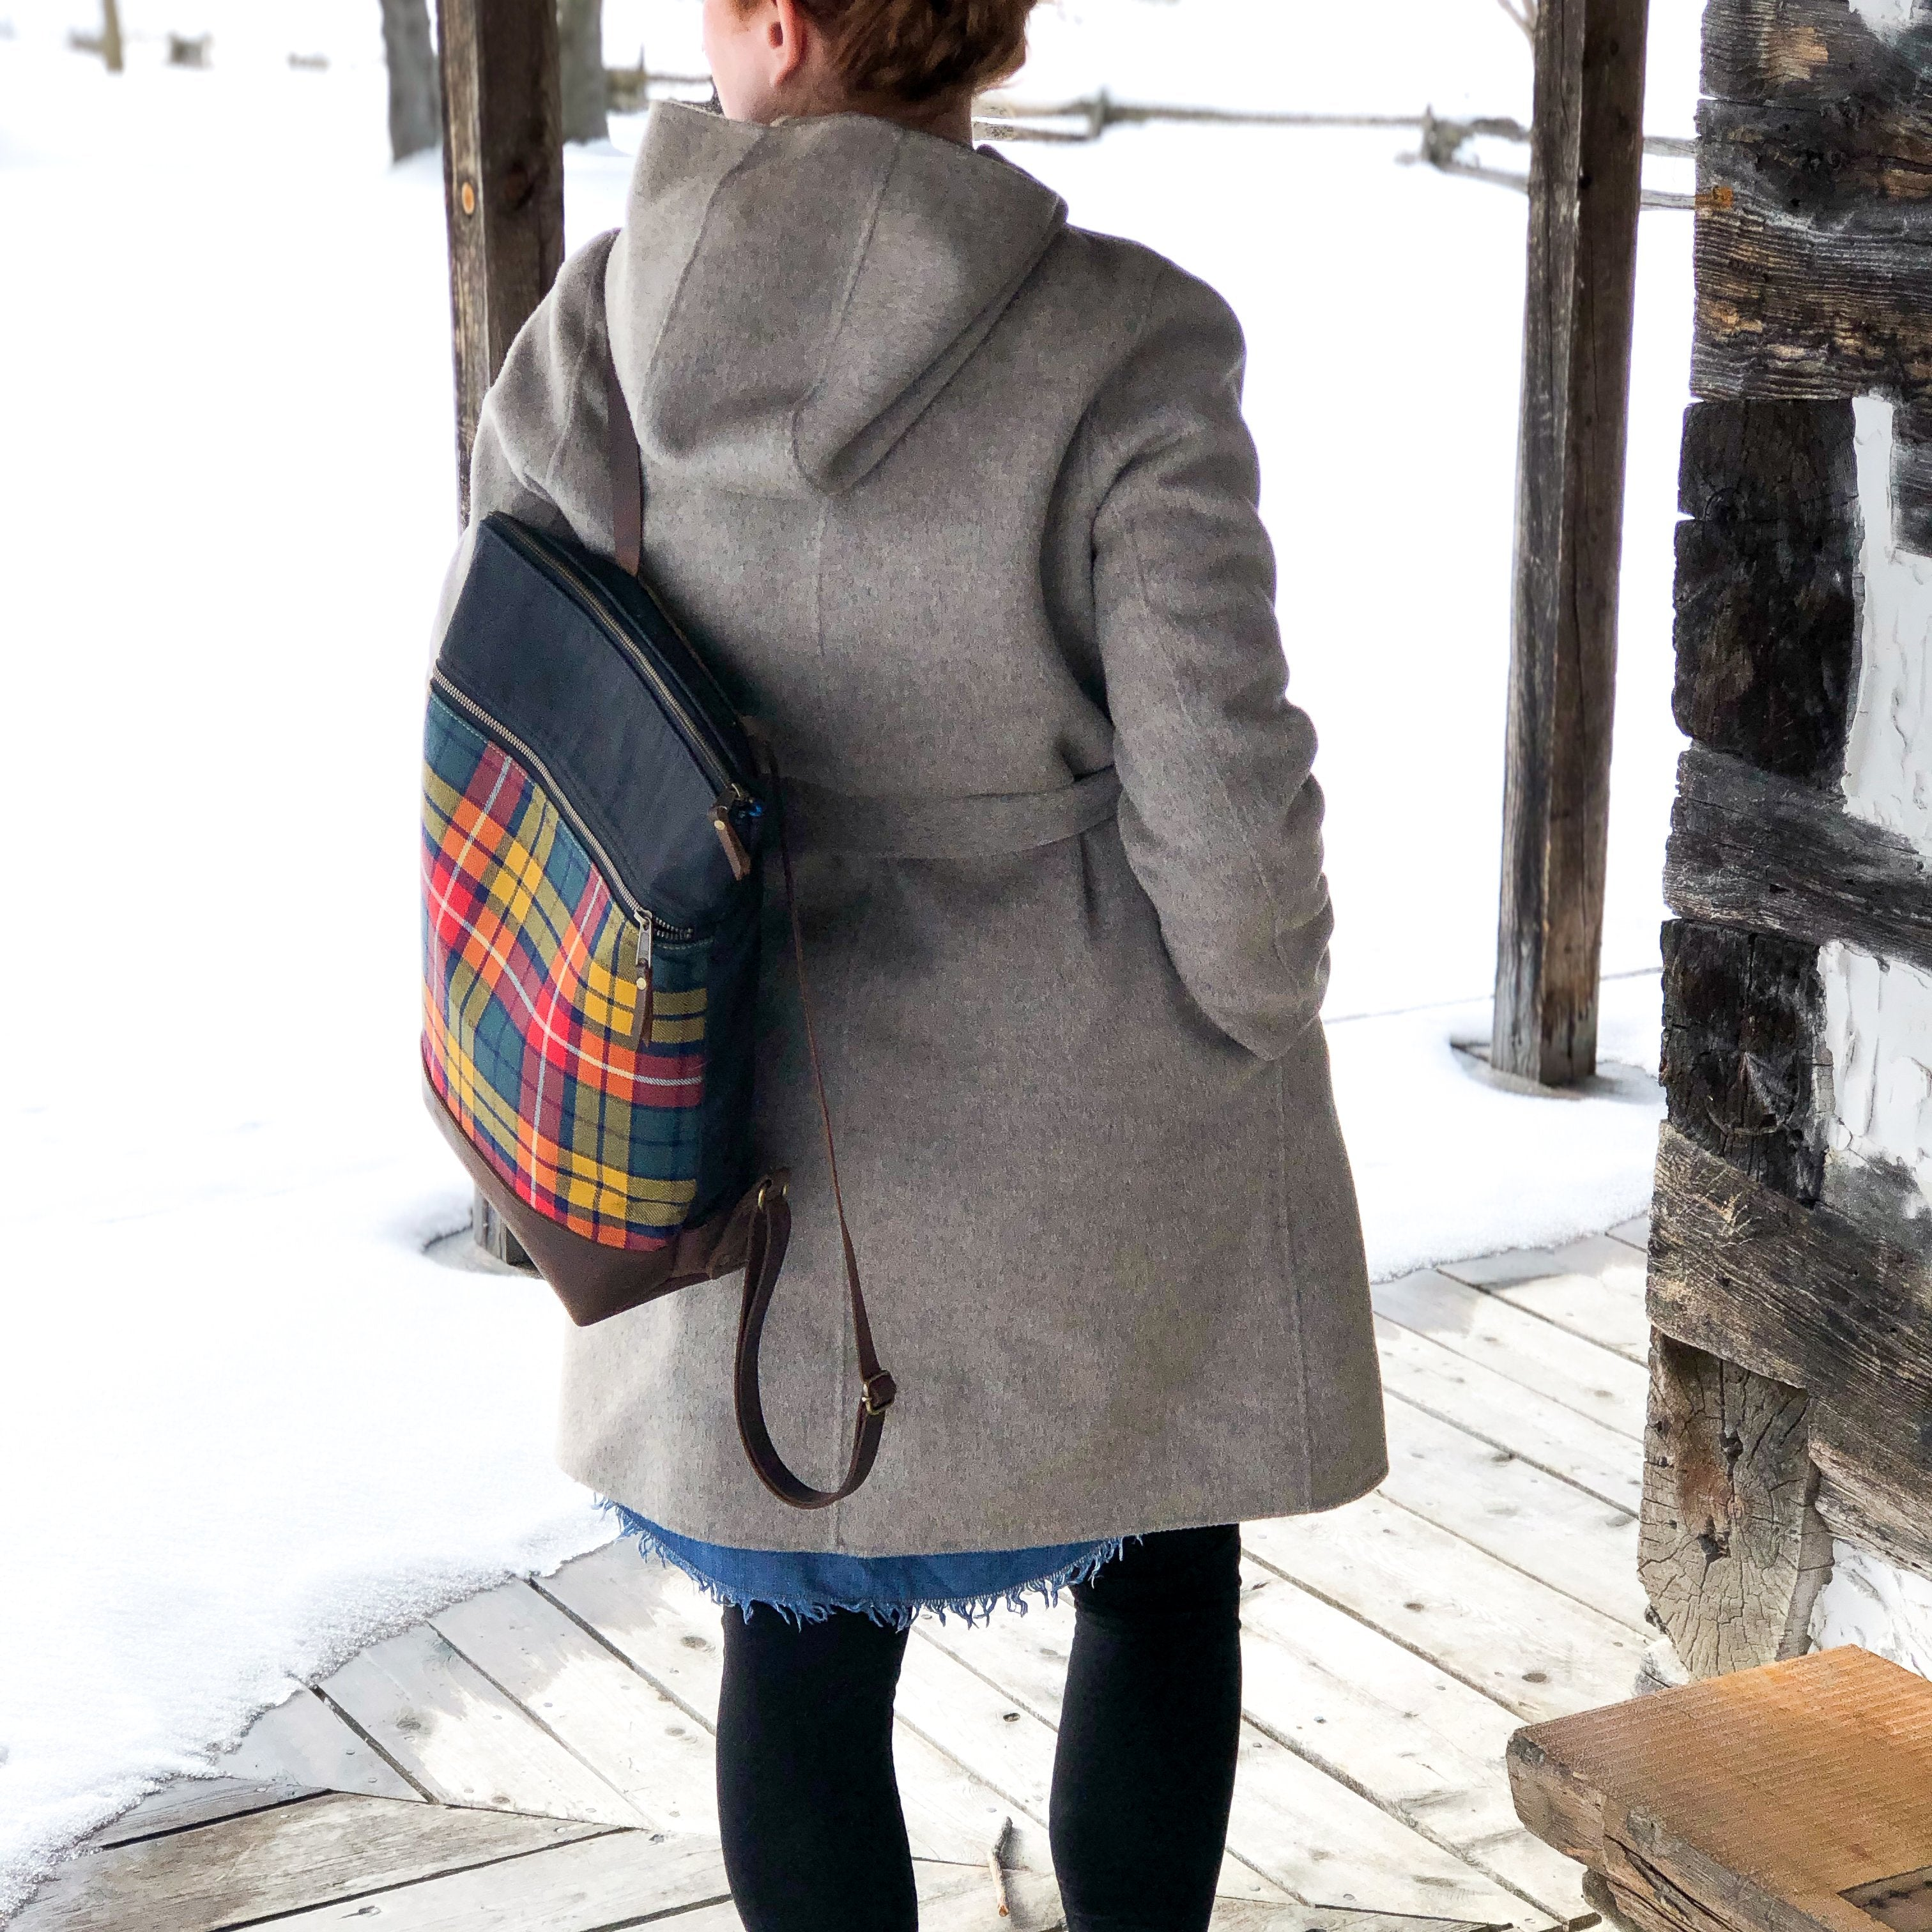 Buchanan tartan backpack lifestyle photo